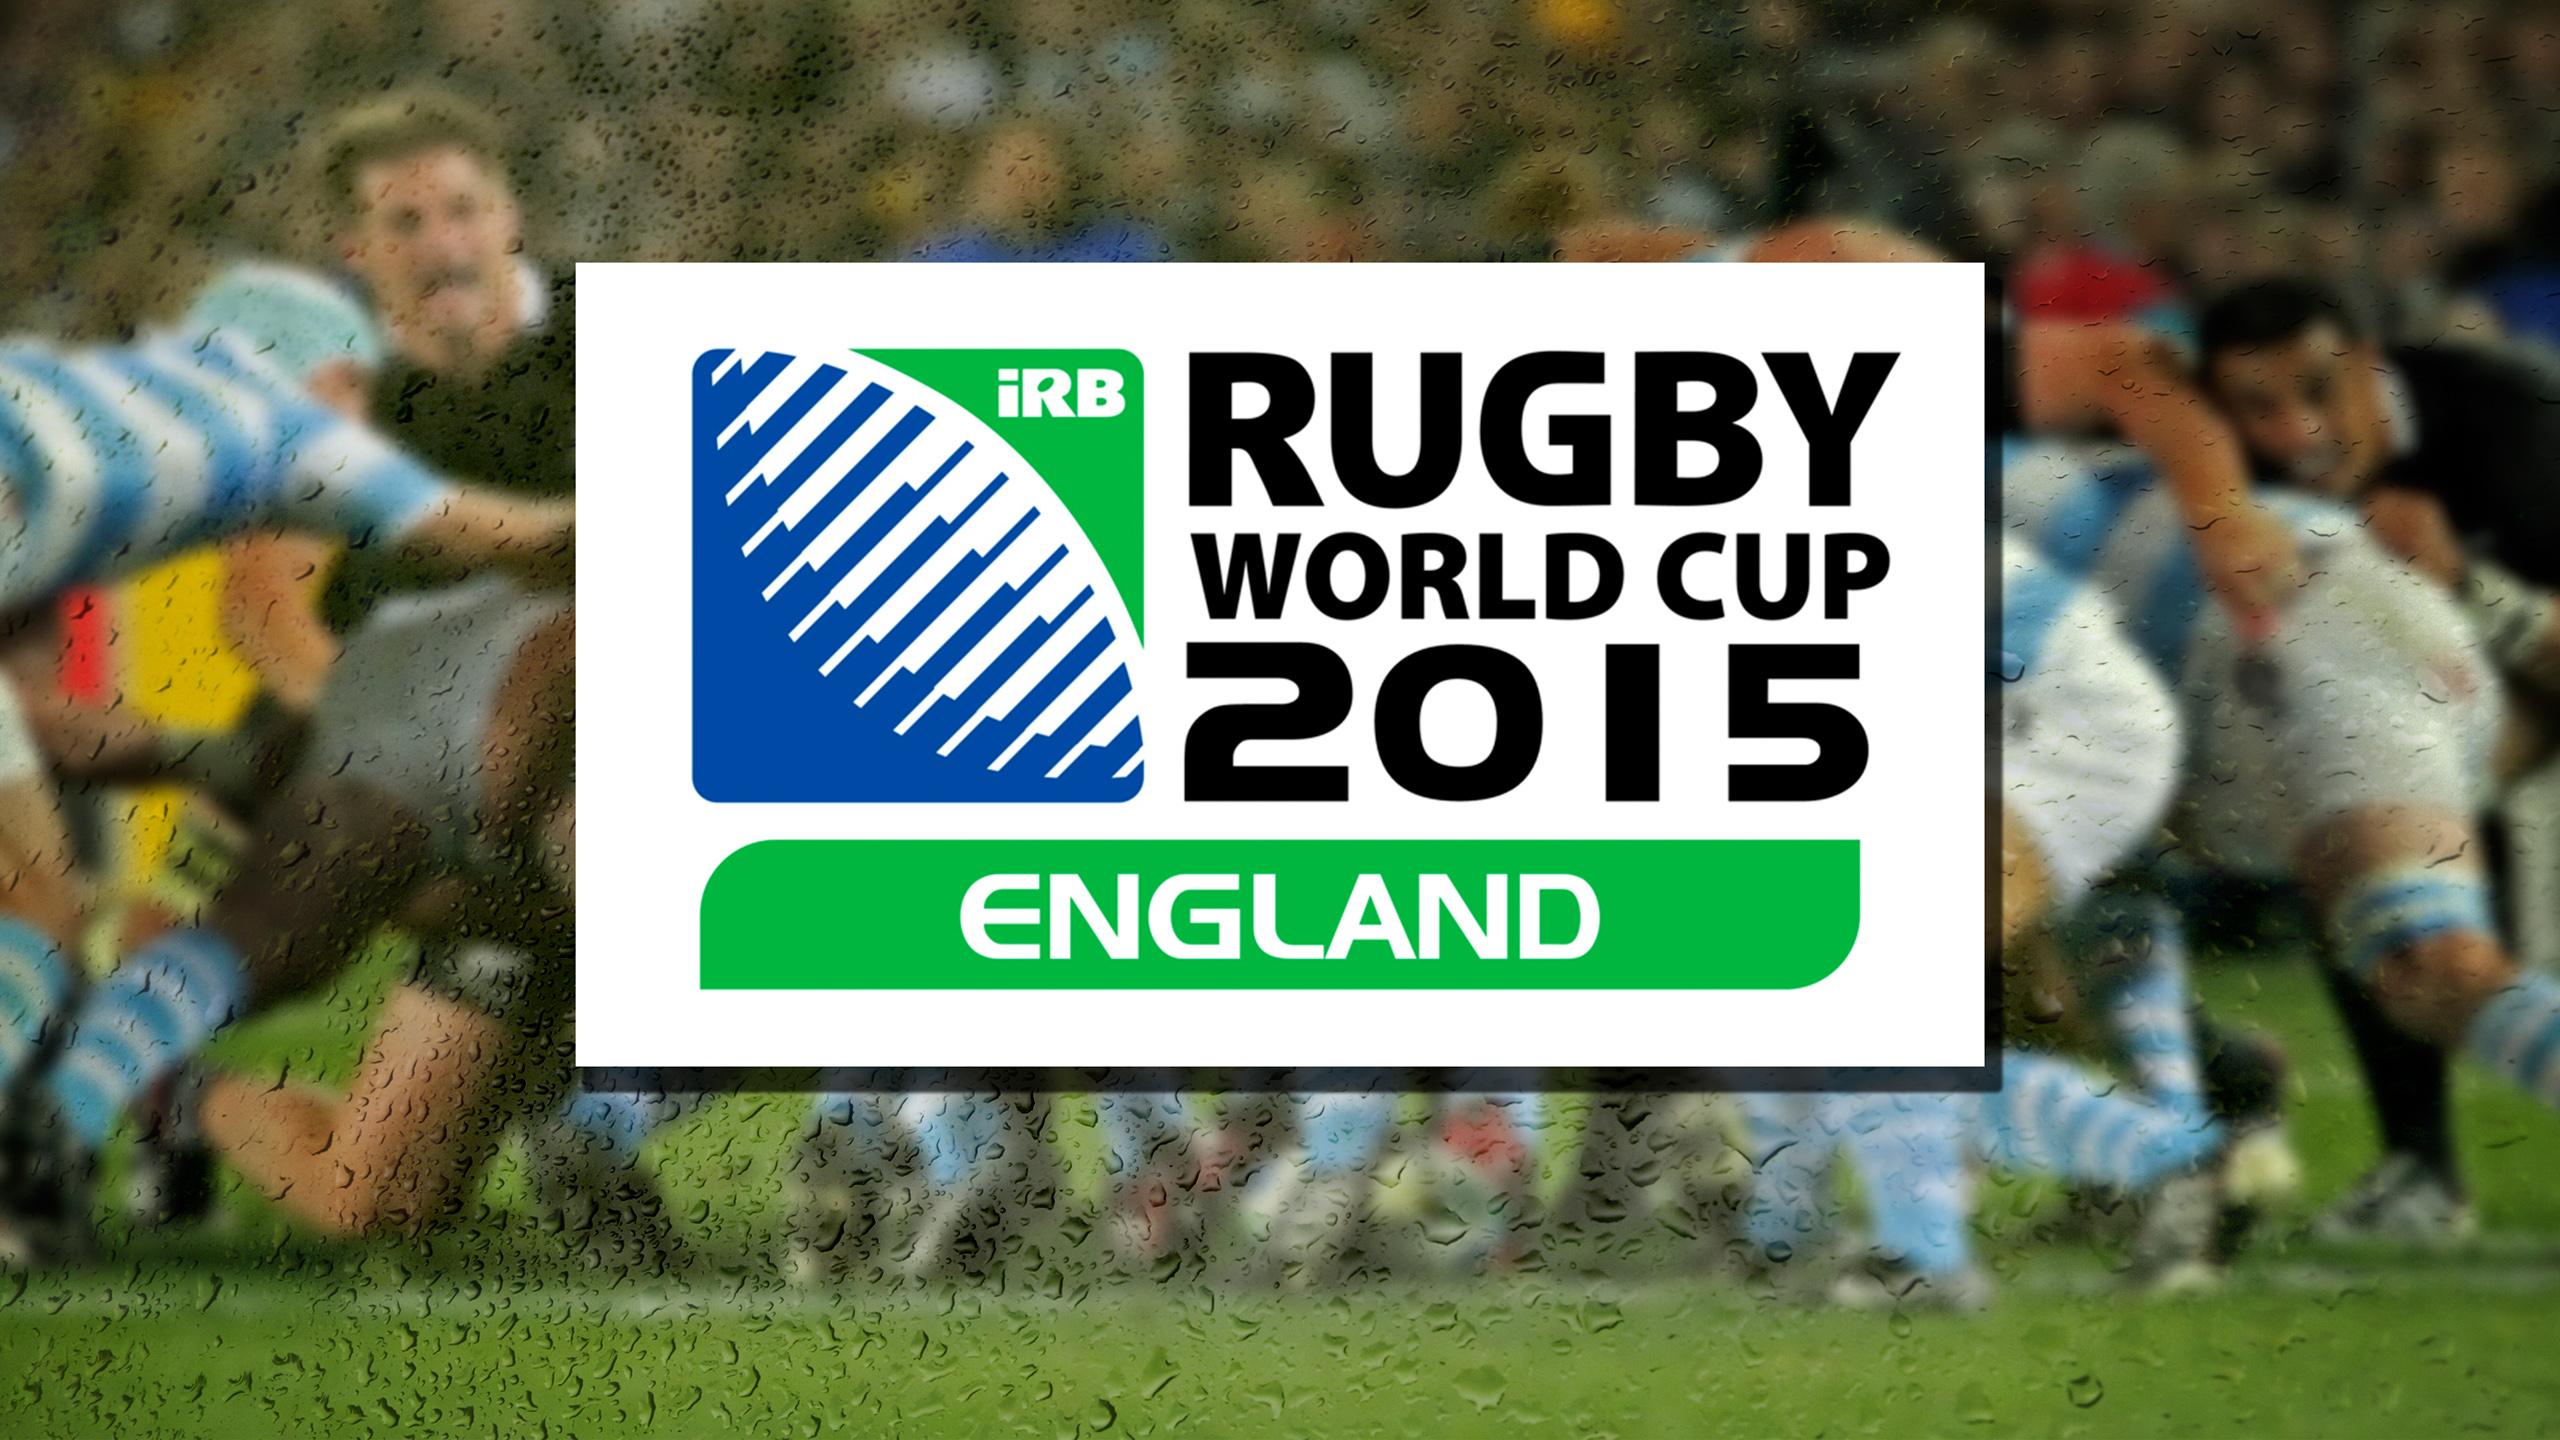 Rugby World Cup England wallpaper